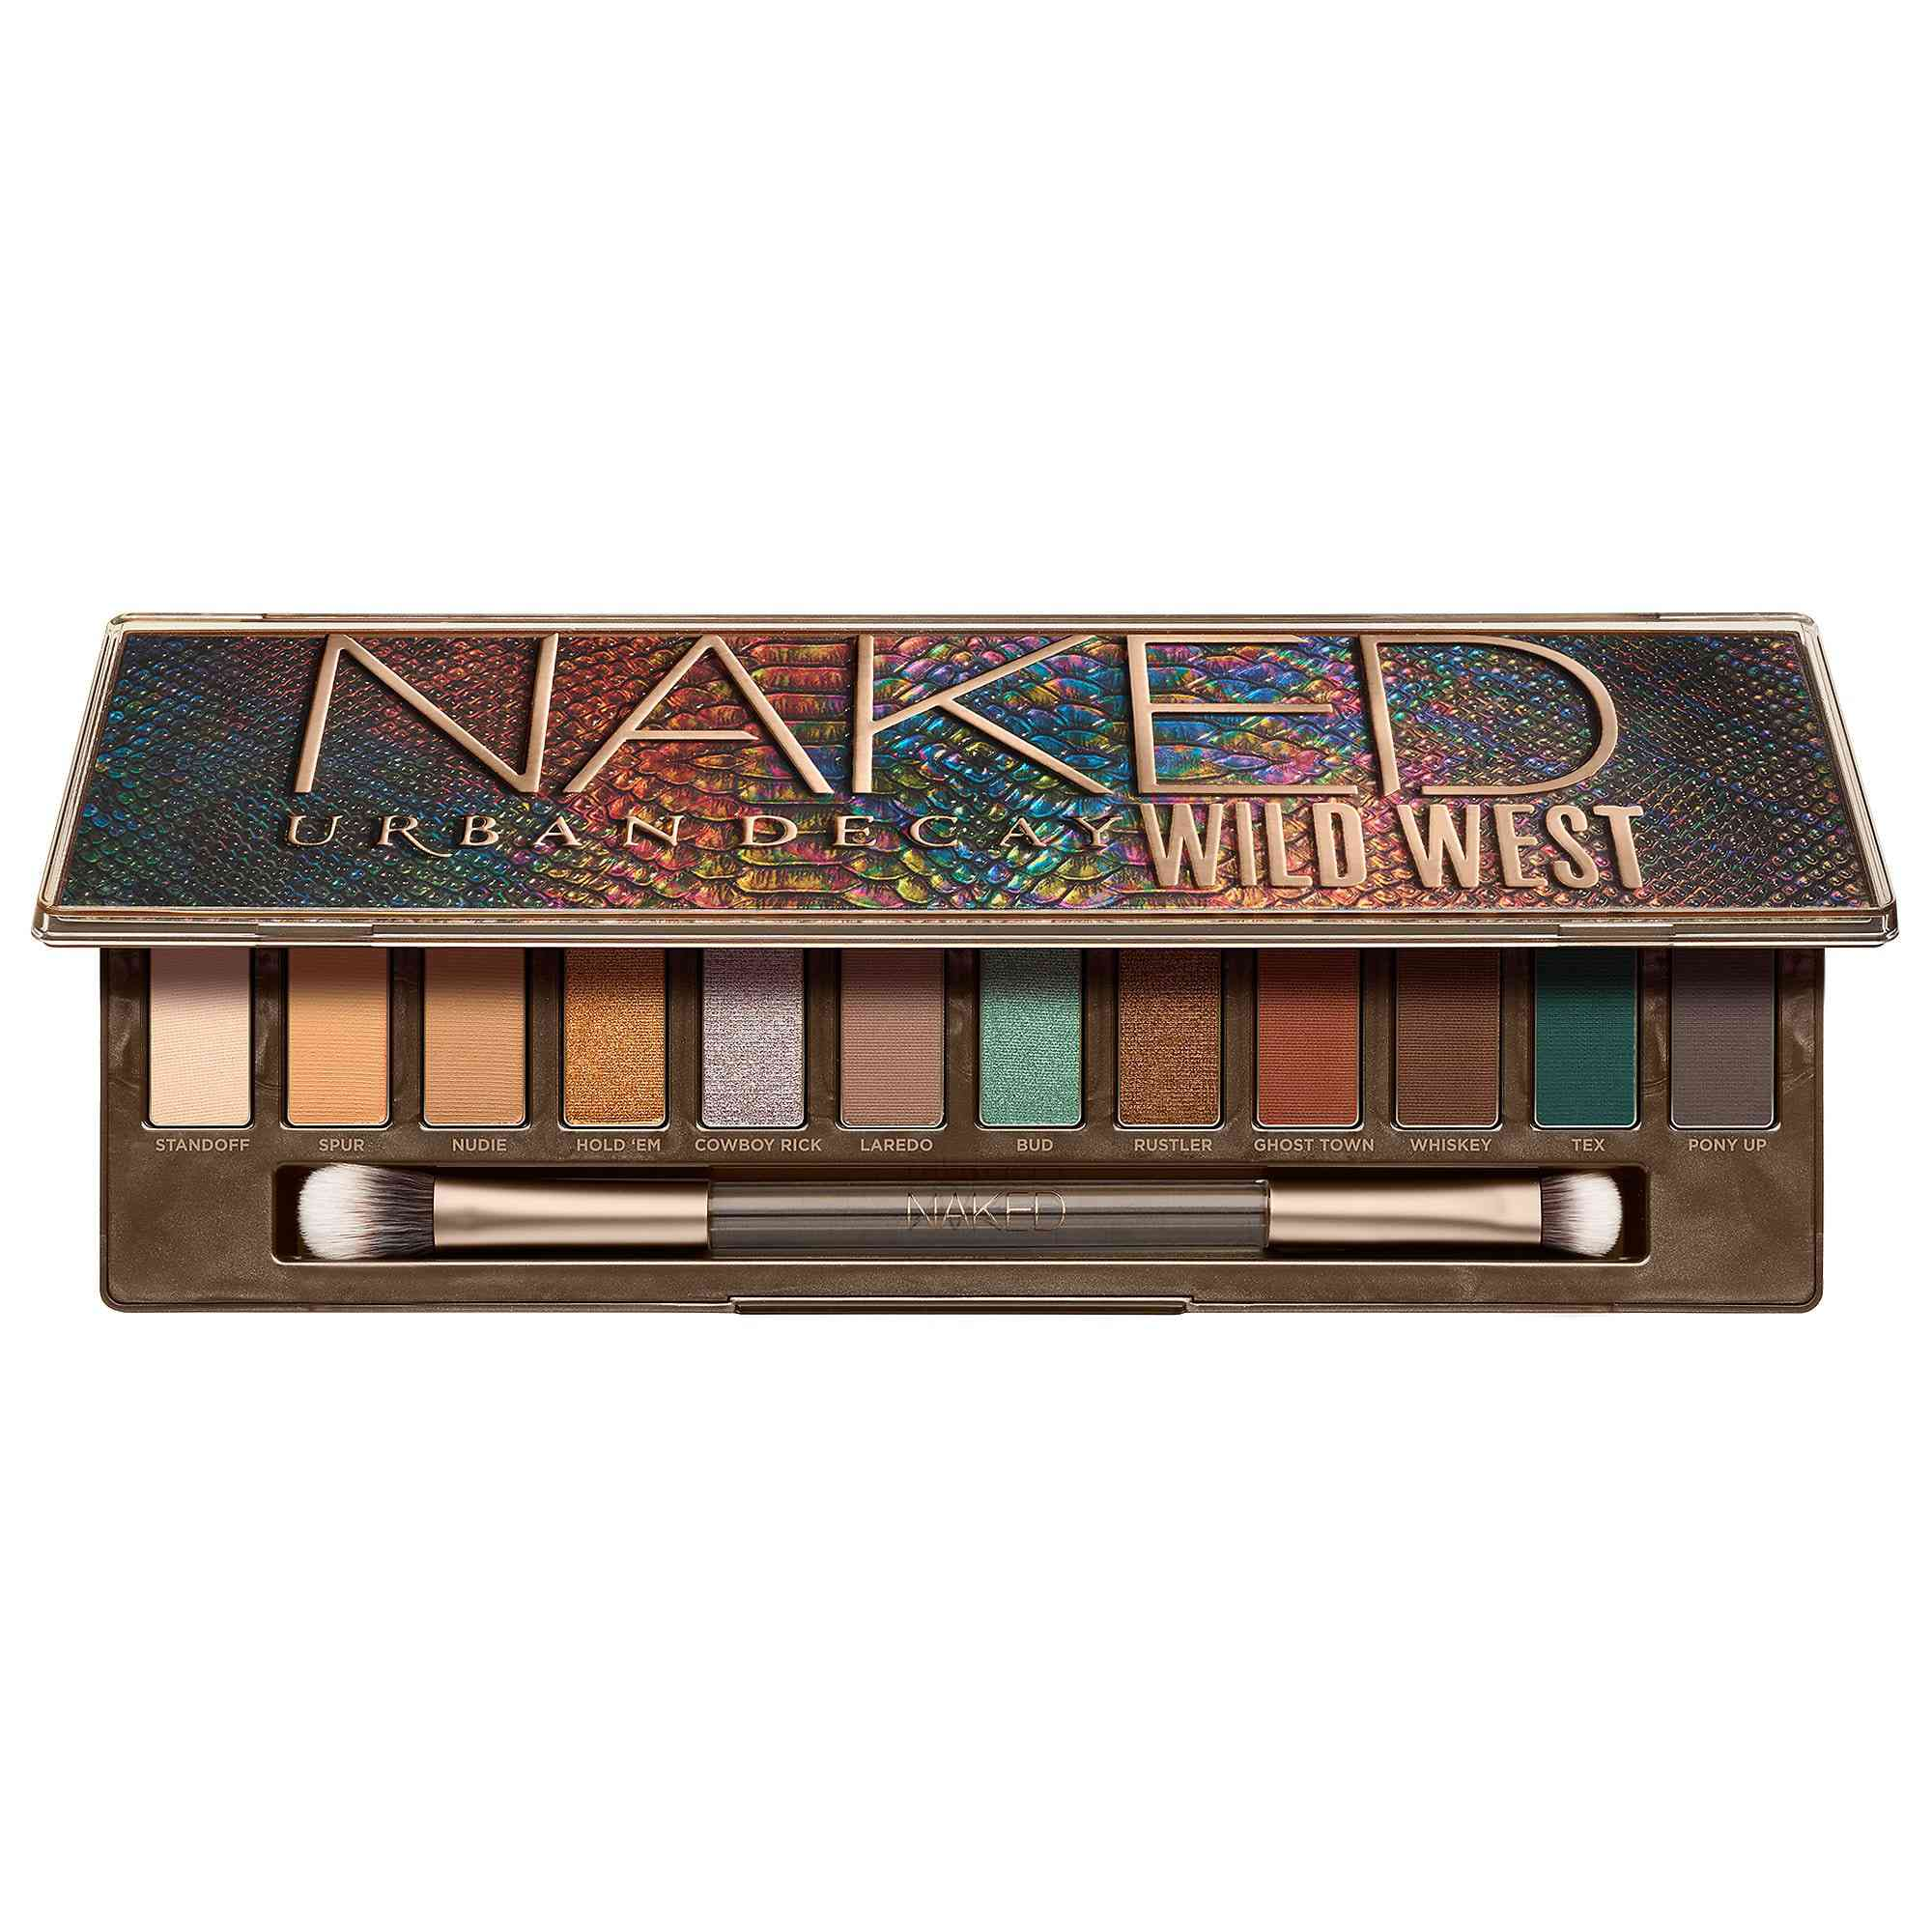 Urban Decay Naked Wild West Palette